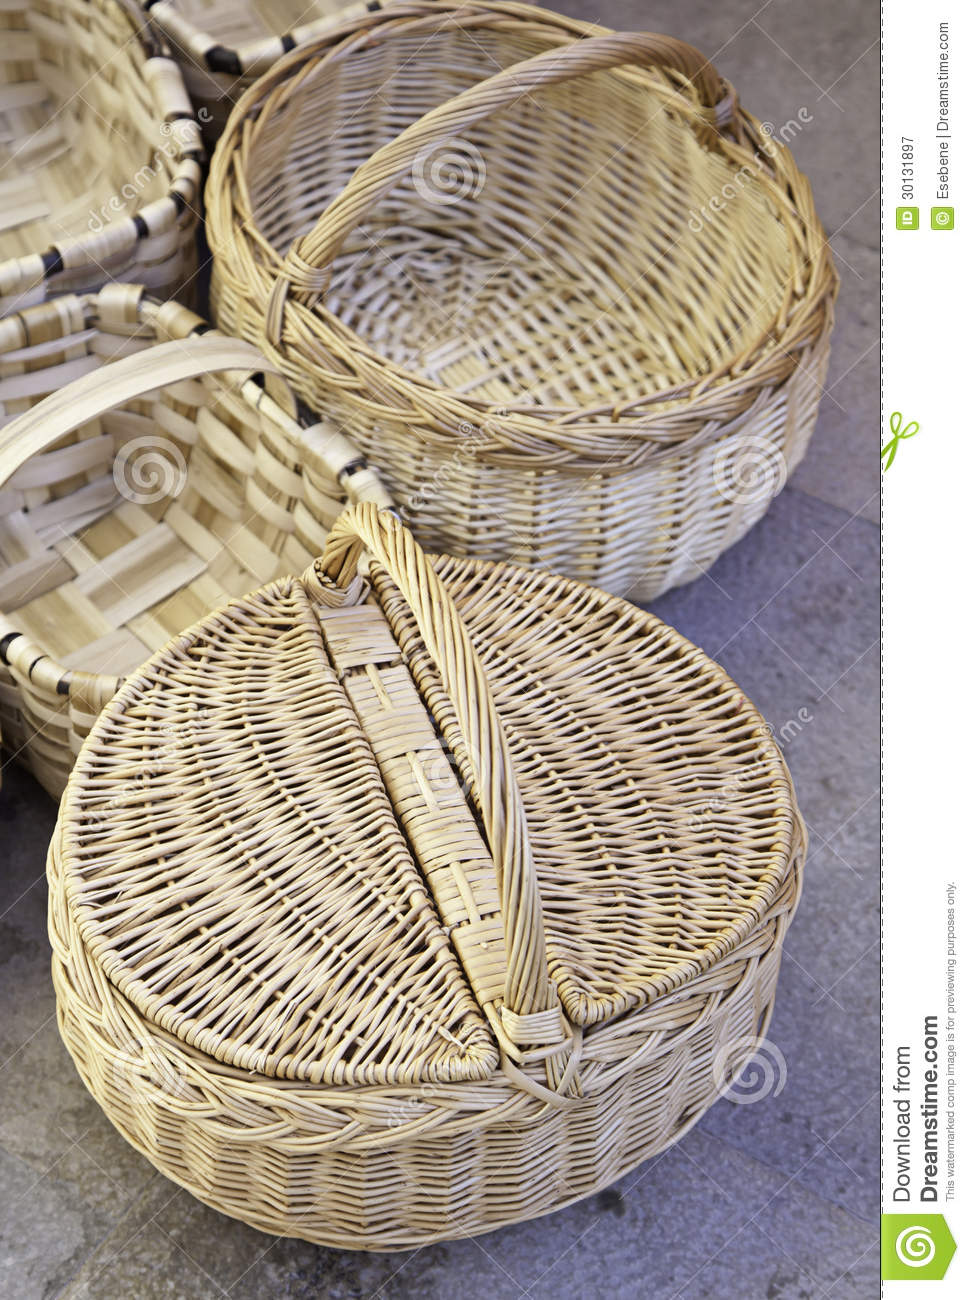 Old Handmade Baskets : Handmade wicker baskets royalty free stock photography